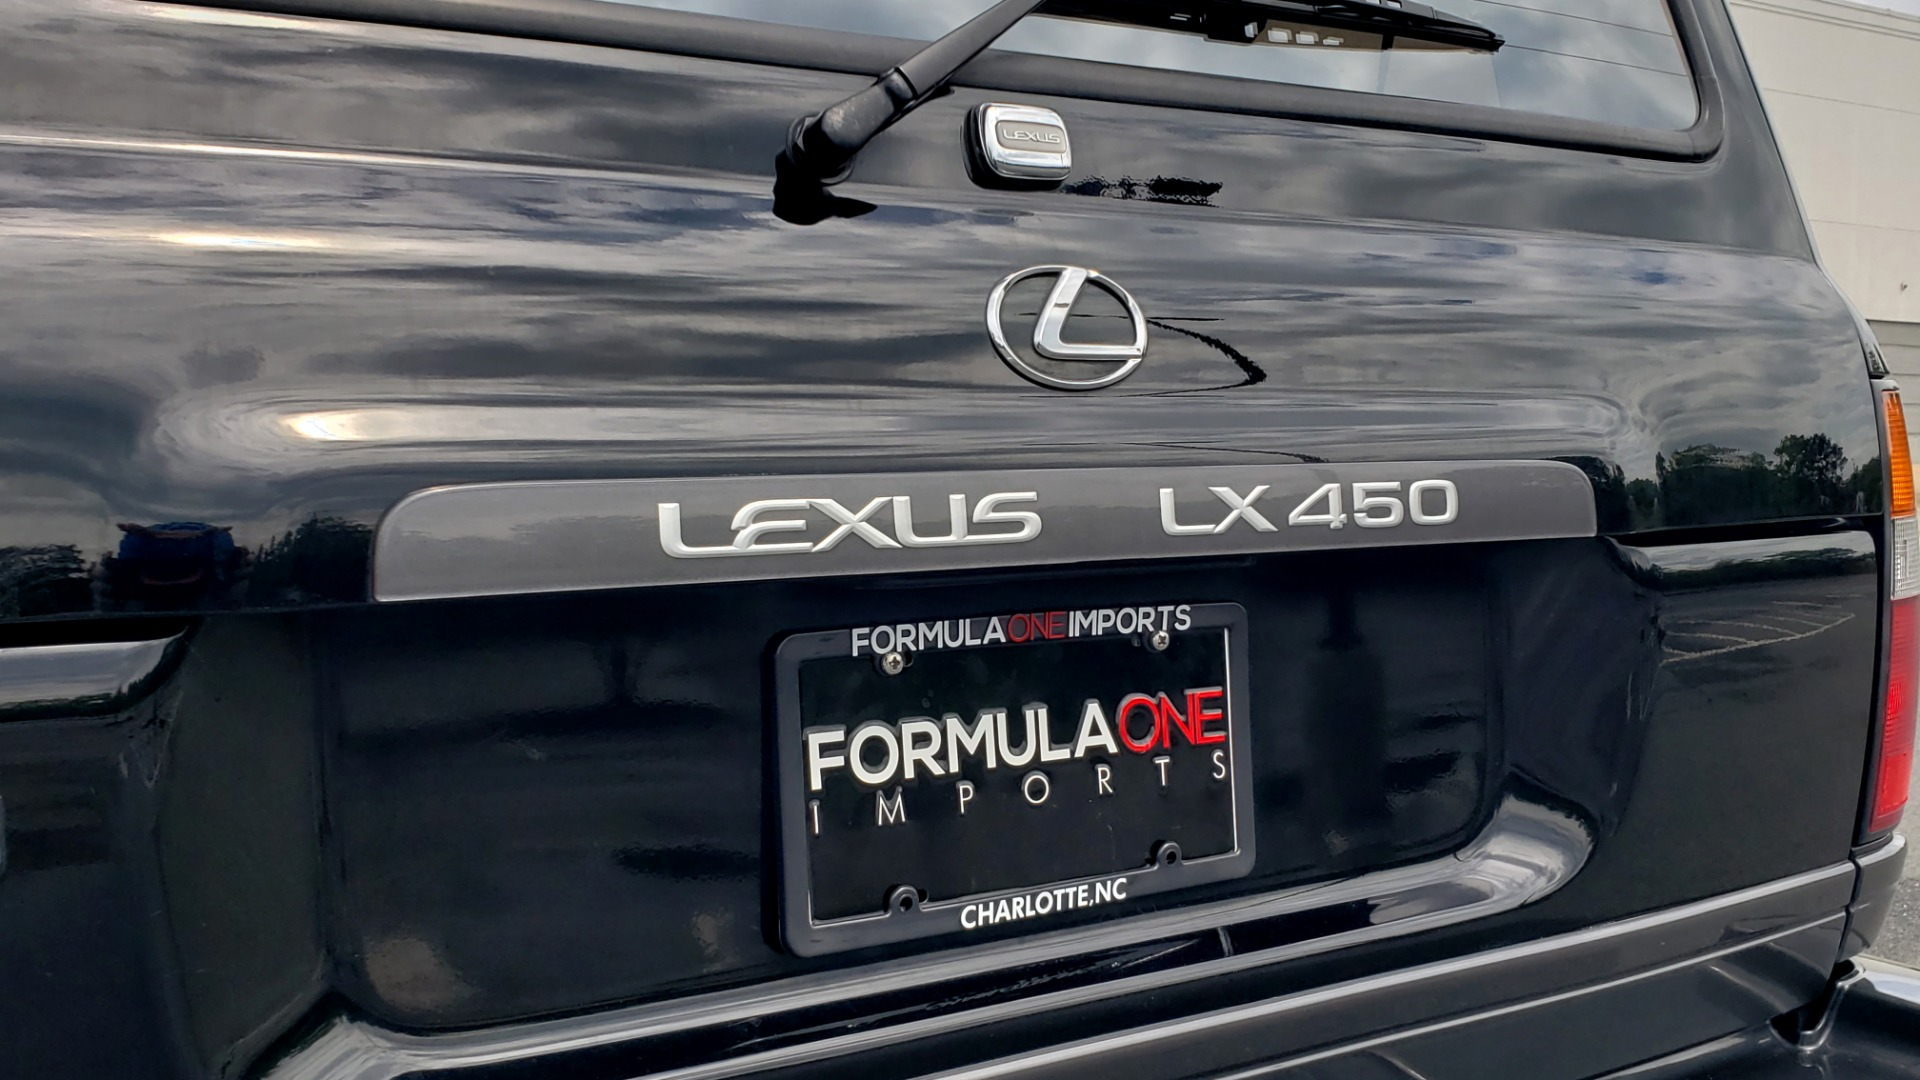 Used 1996 Lexus LX 450 AWD / 4.5L 6-CYL / 4-SPD AUTO / RUNNING BOARDS / NEW BFG TIRES for sale $49,995 at Formula Imports in Charlotte NC 28227 57